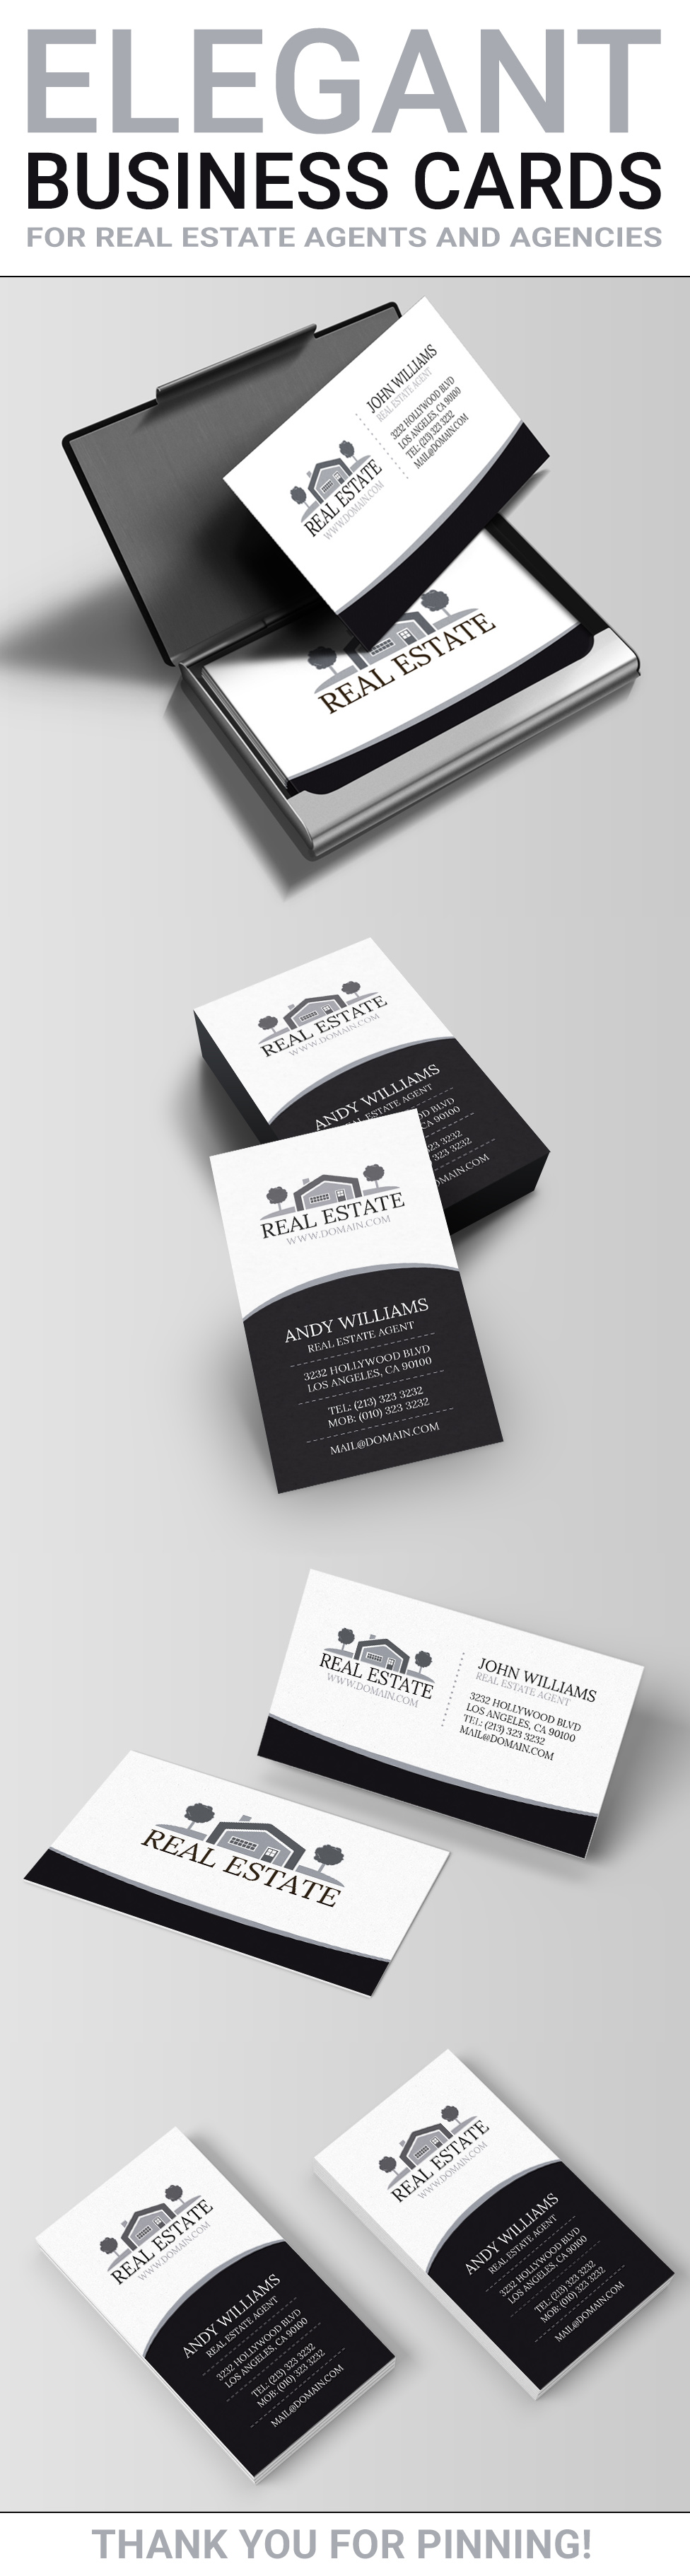 Real estate business card template realtor business cards elegant black and white real estate business cards template horizontal and vertical business cards in reheart Images